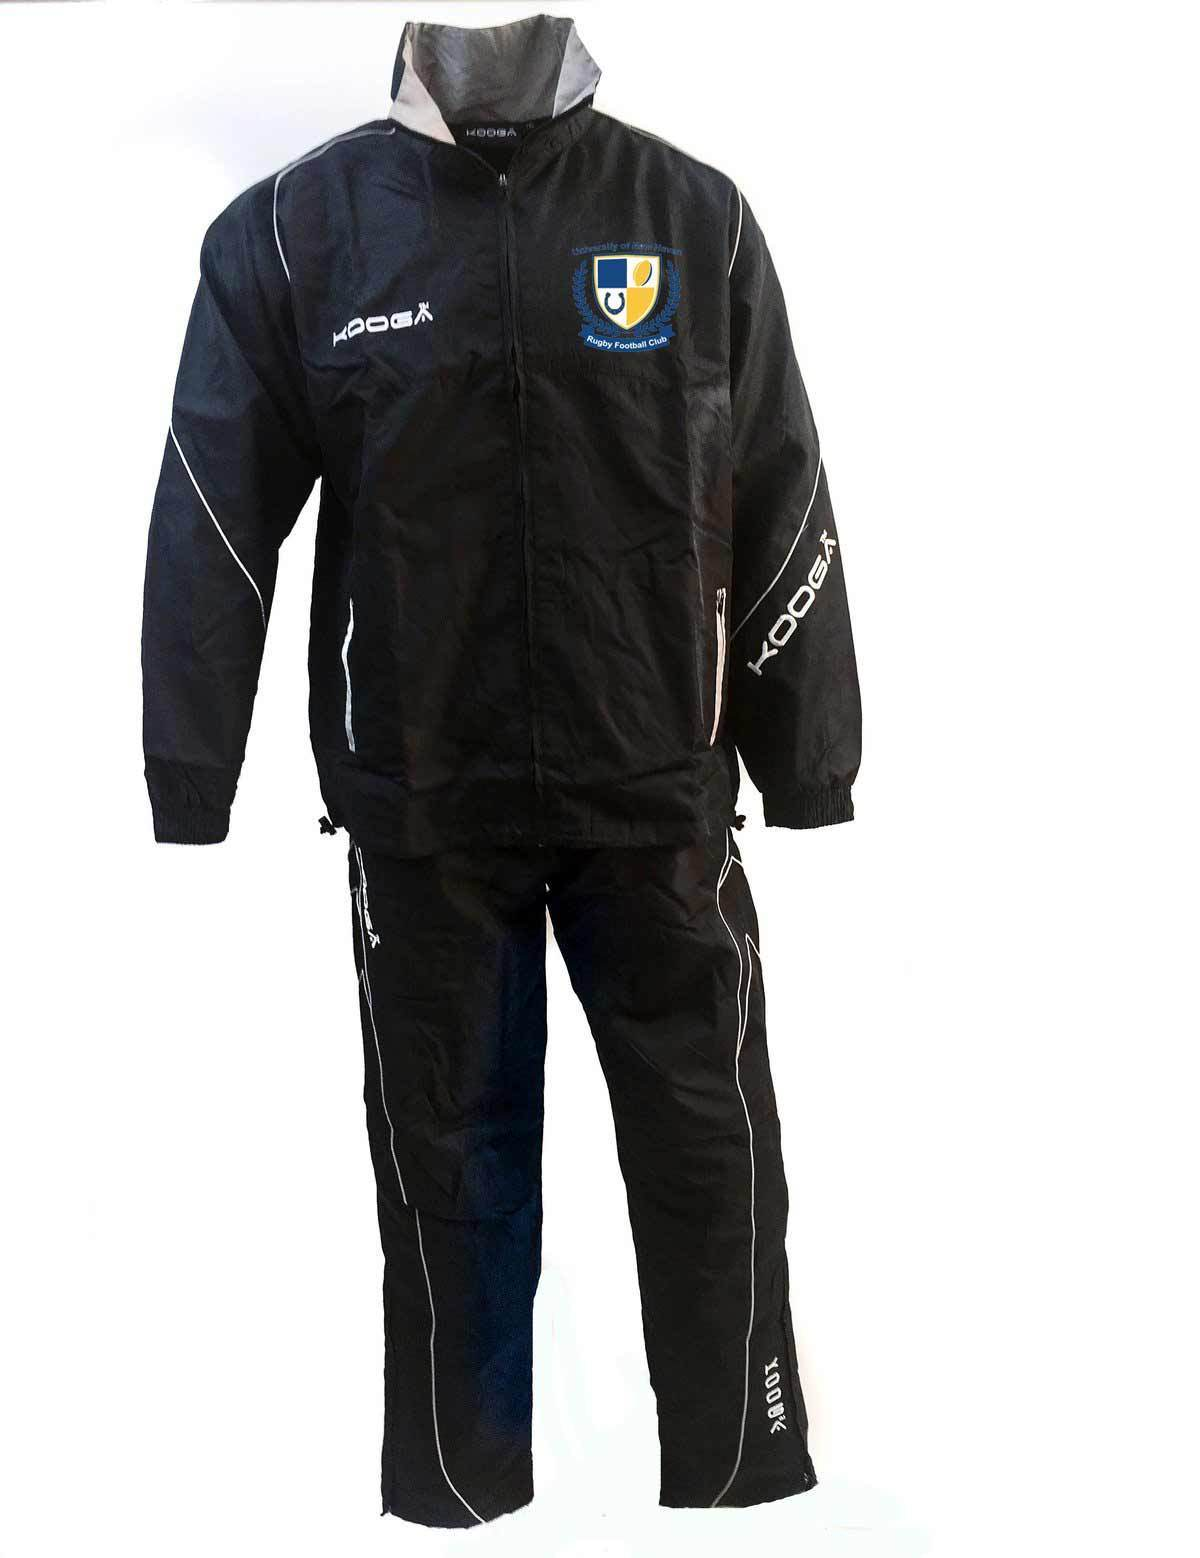 UNH Tracksuit